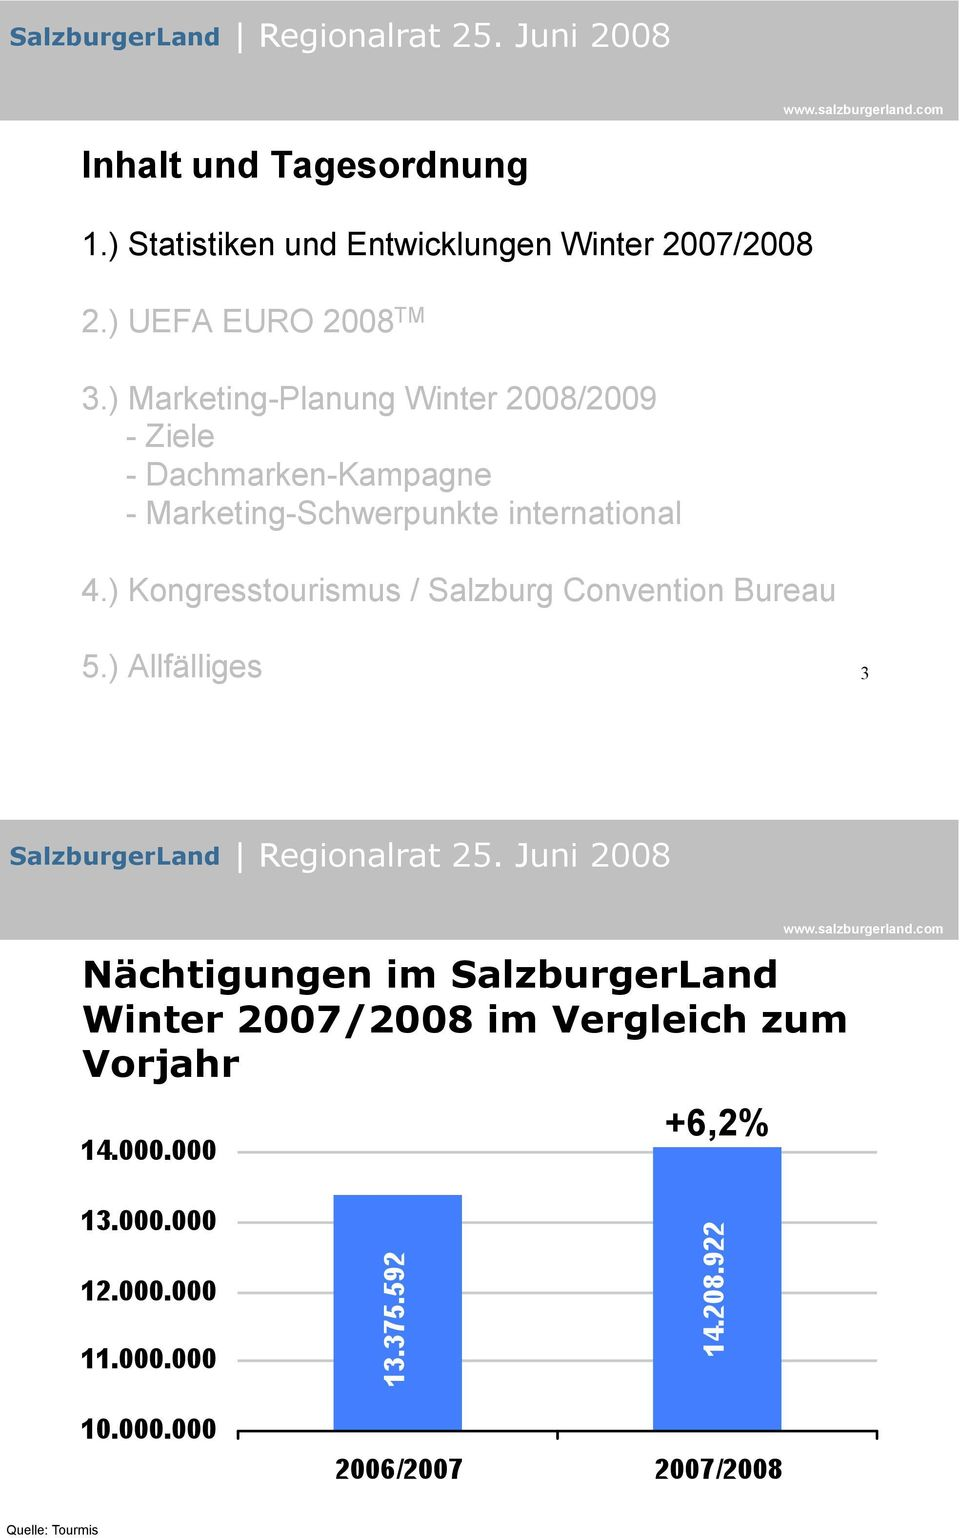 ) Marketing-Planung Winter 2008/2009 - Ziele - Dachmarken-Kampagne - Marketing-Schwerpunkte